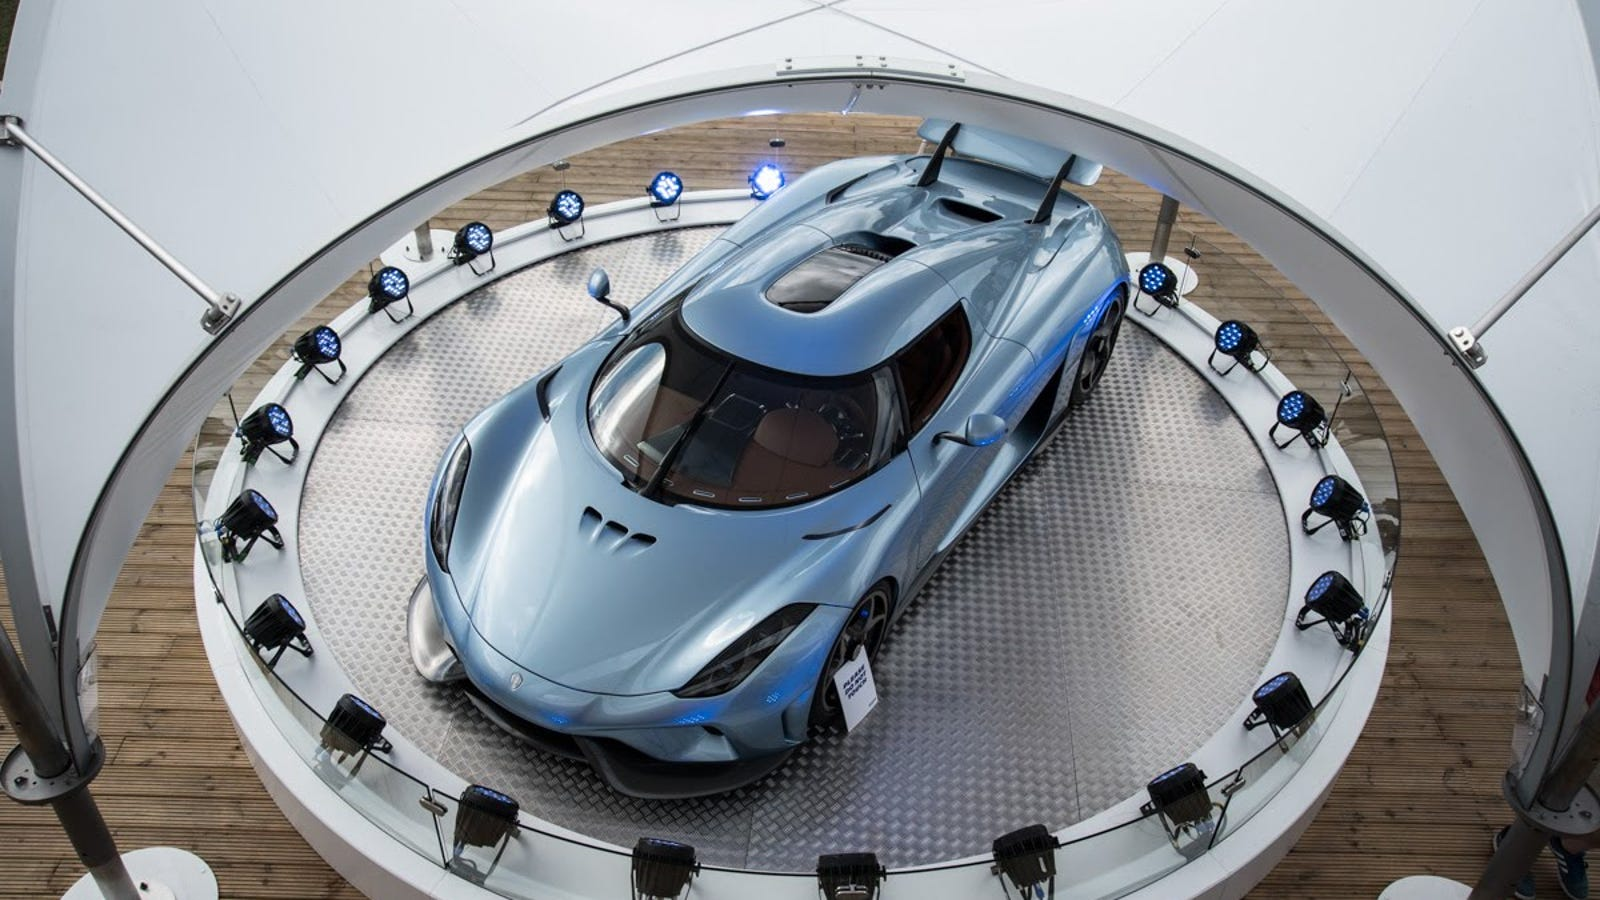 koenigsegg regera jalopnik with The Koenigsegg Regera Downshifts Without Shifting Down 1752457113 on The Koenigsegg One 1 Is Swedens 280 Mph Carbon Fiber H 1532088783 furthermore Koenigseggs Mad Genius Ceo Can Track Every Koenigsegg C 1793302038 as well Christian Von Koenigsegg Specs His 1 9 Million Superca 1793712626 also Showthread likewise The Koenigsegg Regera Is Still The Craziest Car Of 2015 1713112110.